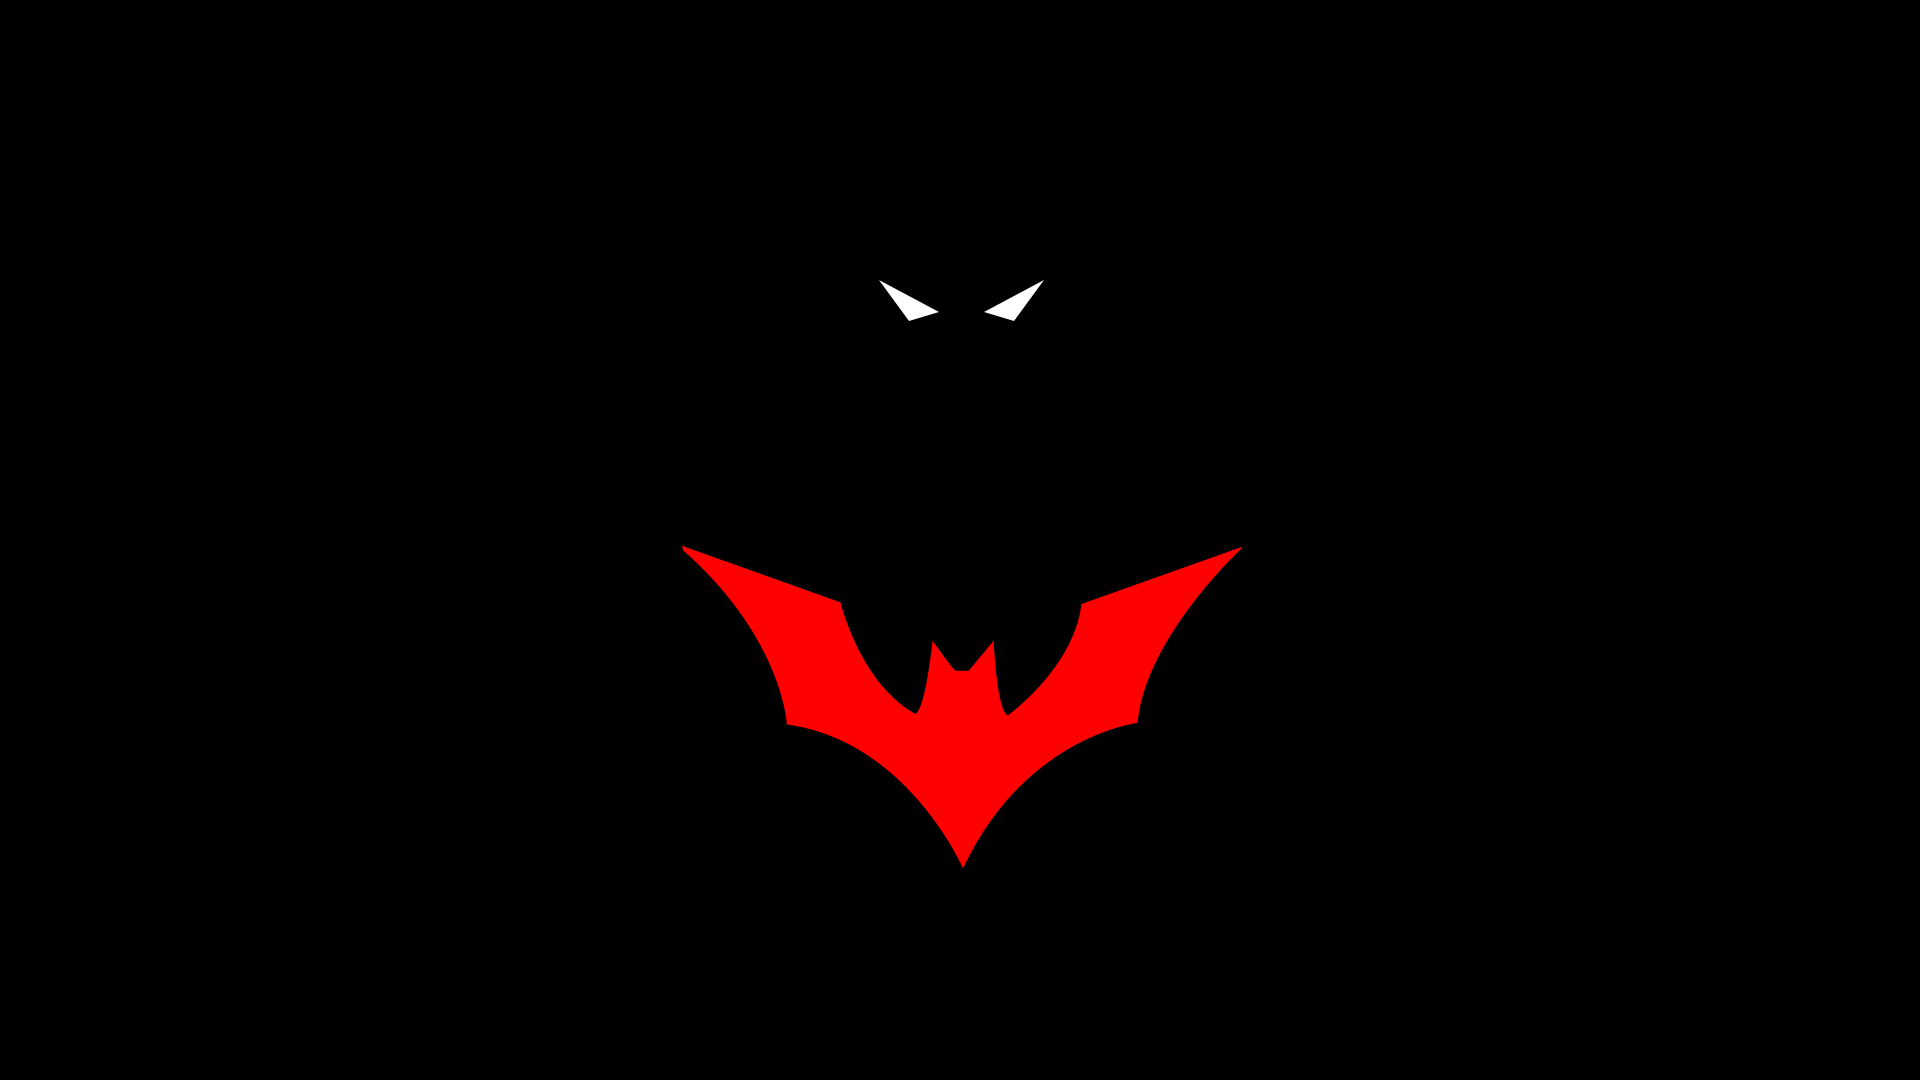 50 batman logo wallpapers for free download hd 1080p batman logo wallpaper 31 thecheapjerseys Gallery